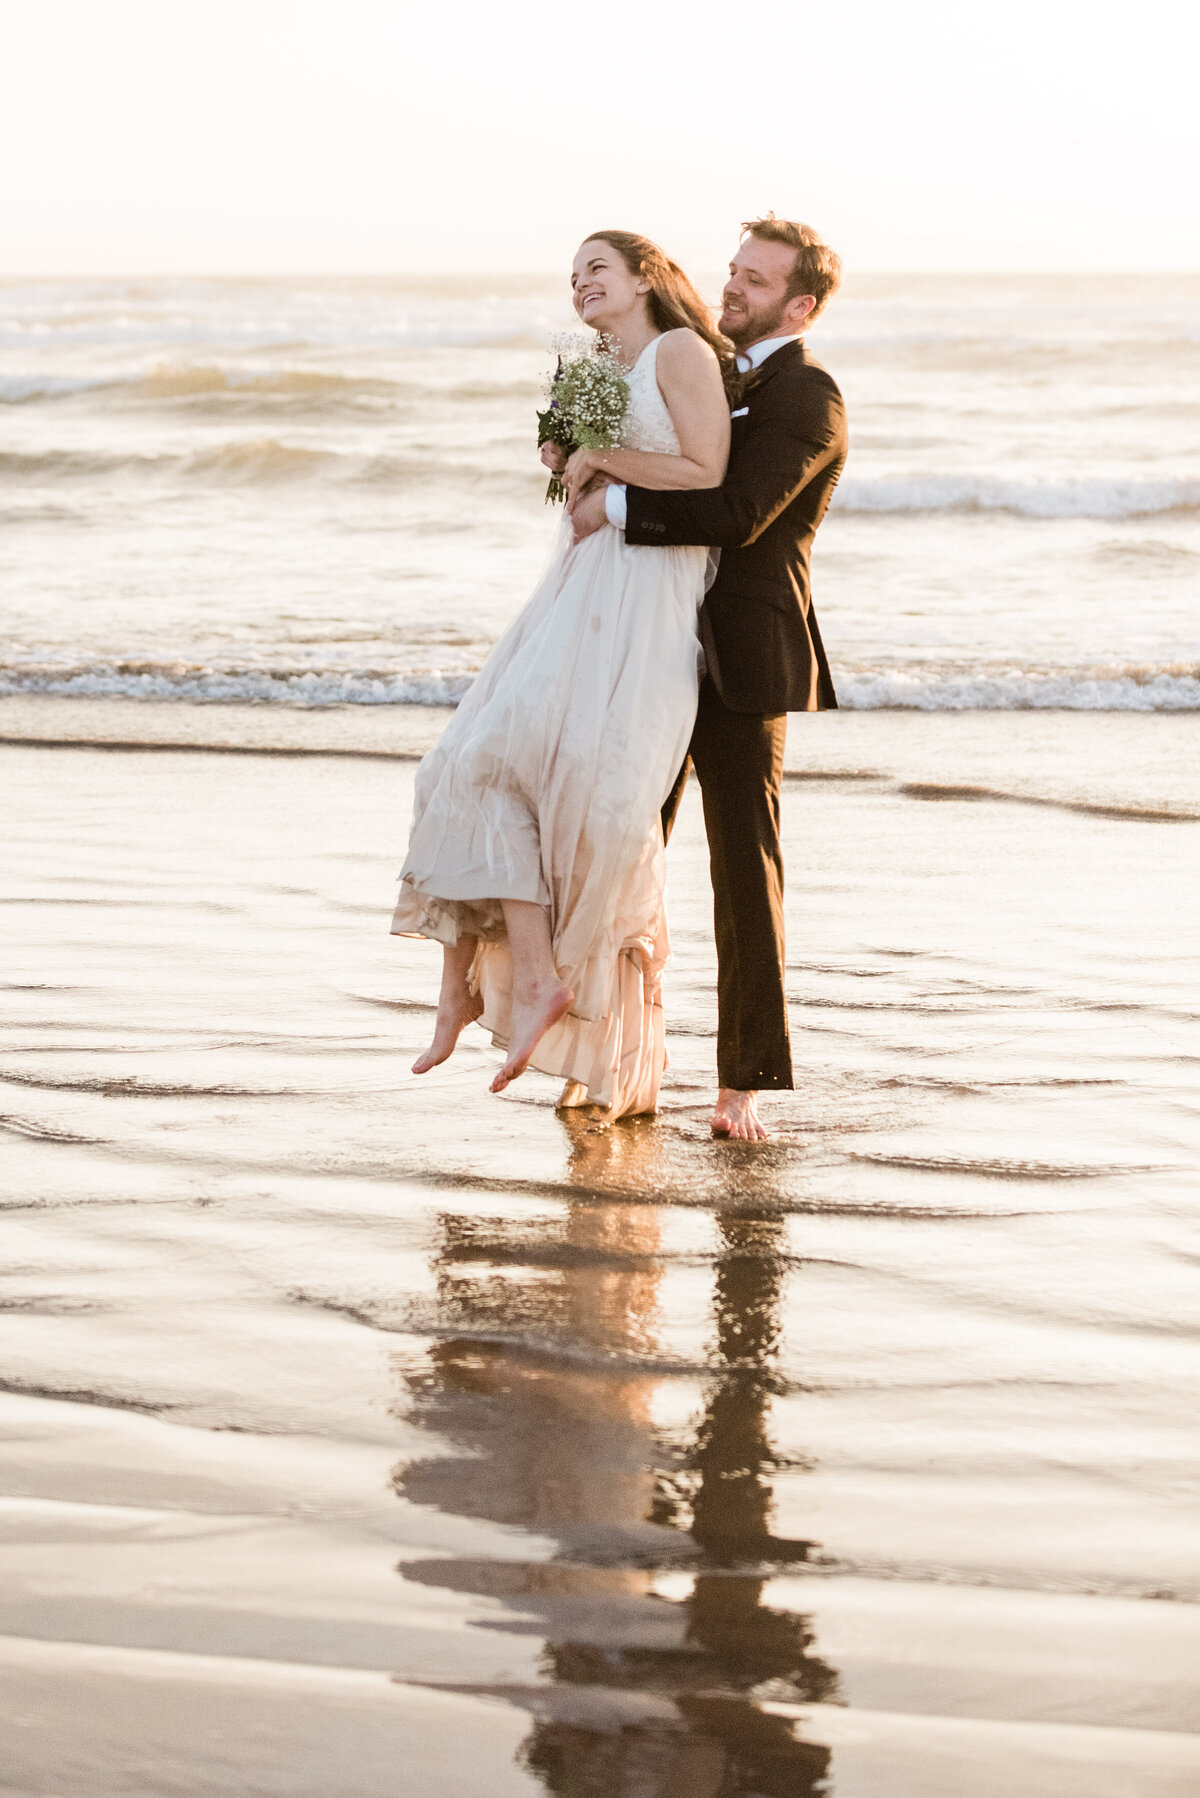 Cannon-Beach-Elopement-Photographer-57